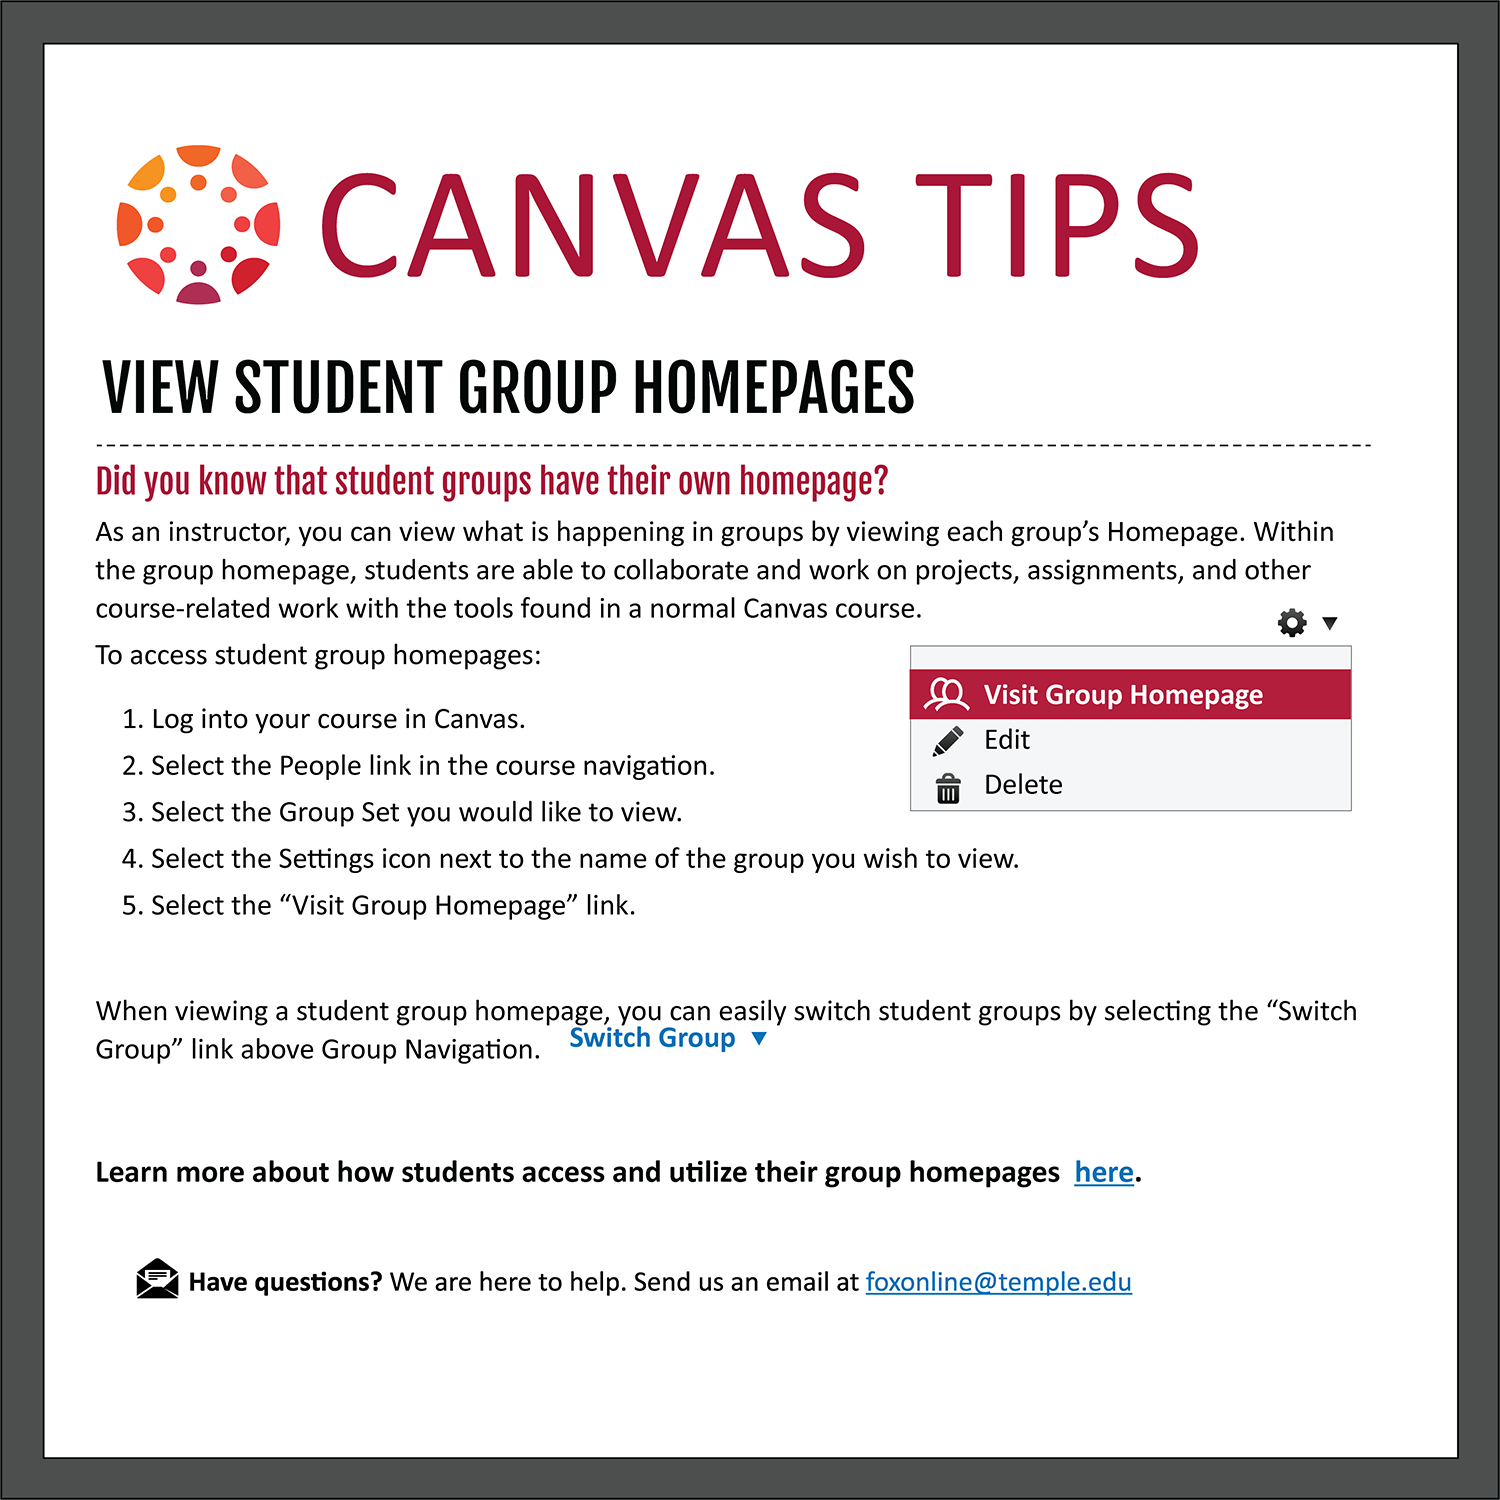 Tip 11: View Student Group Homepages